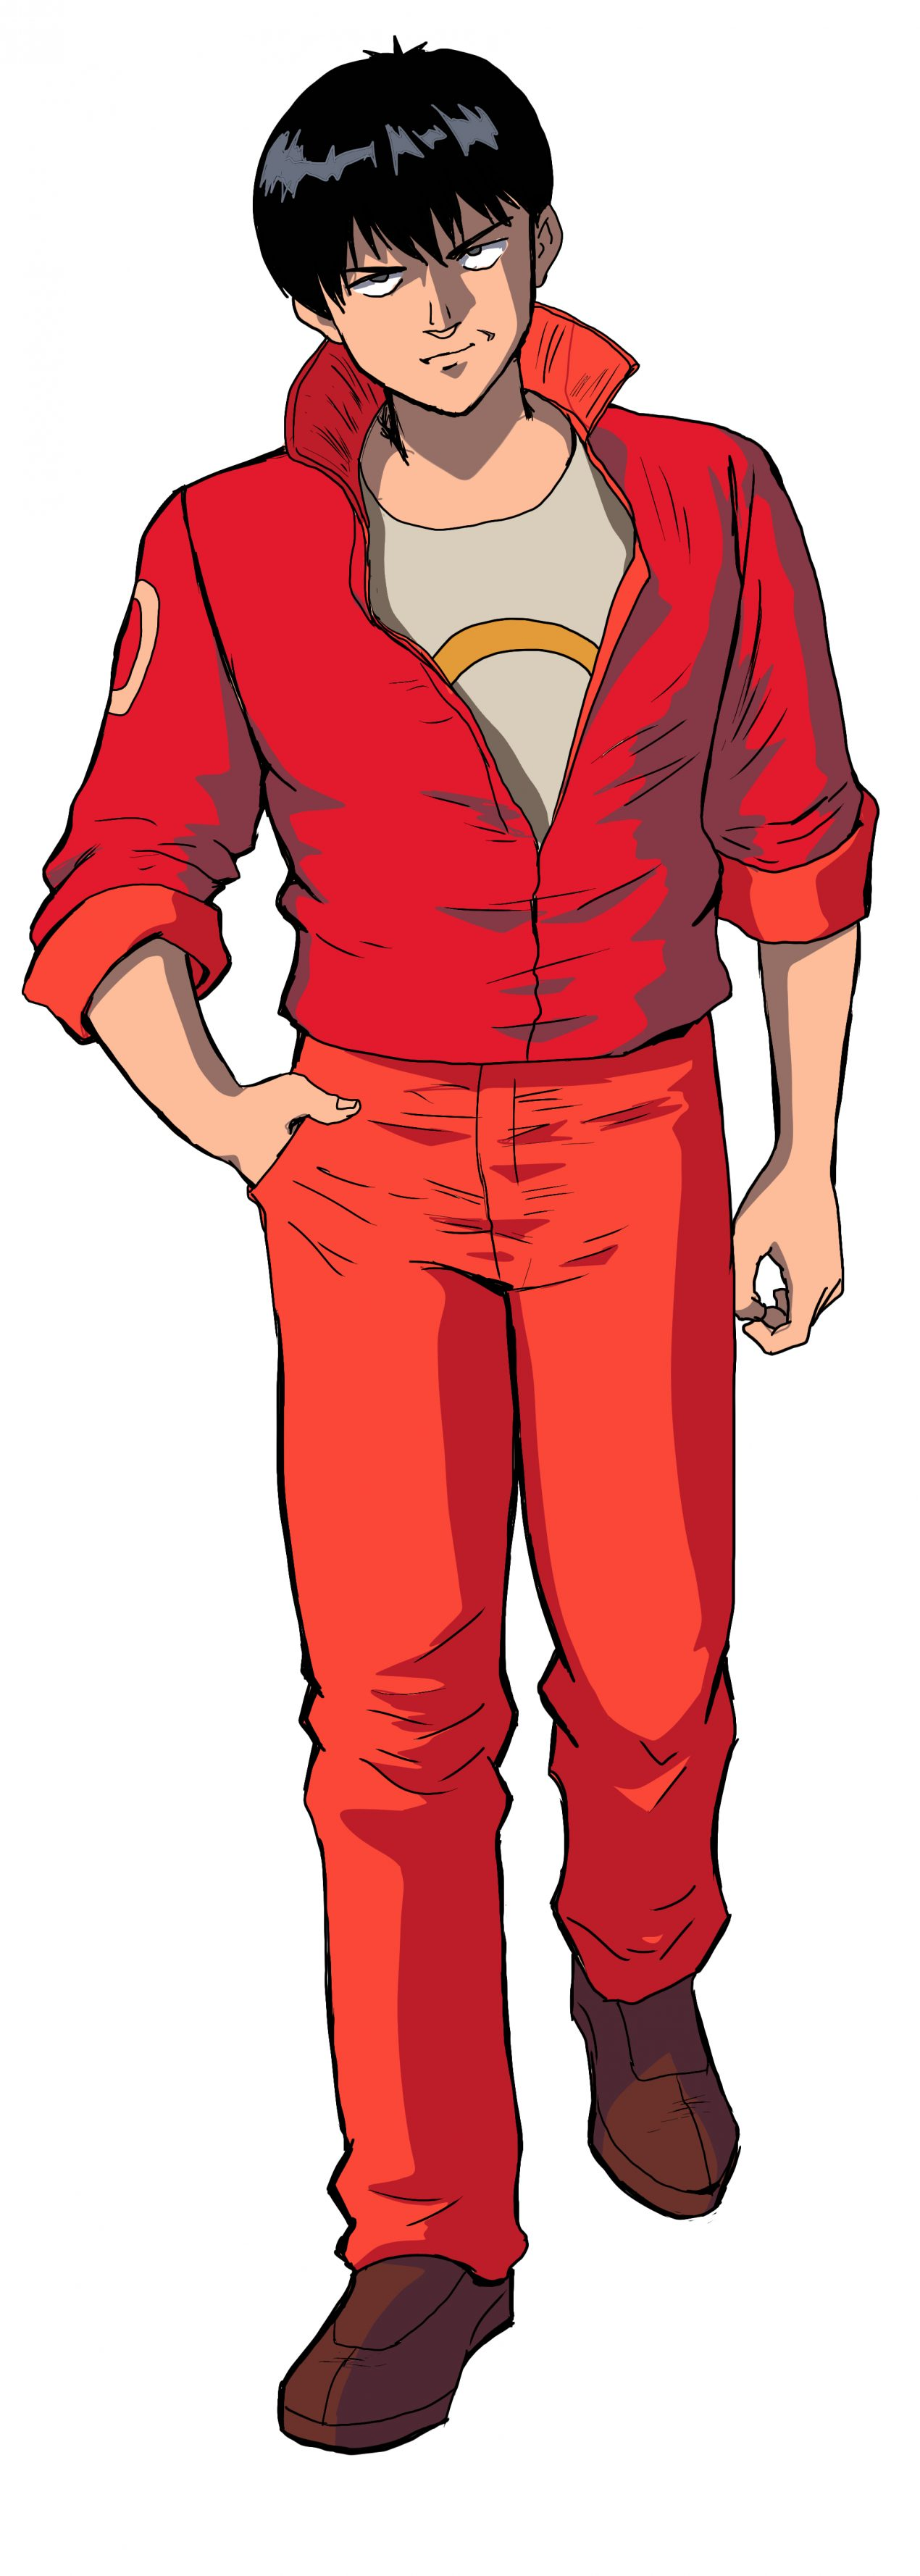 How to Draw Kaneda from Akira